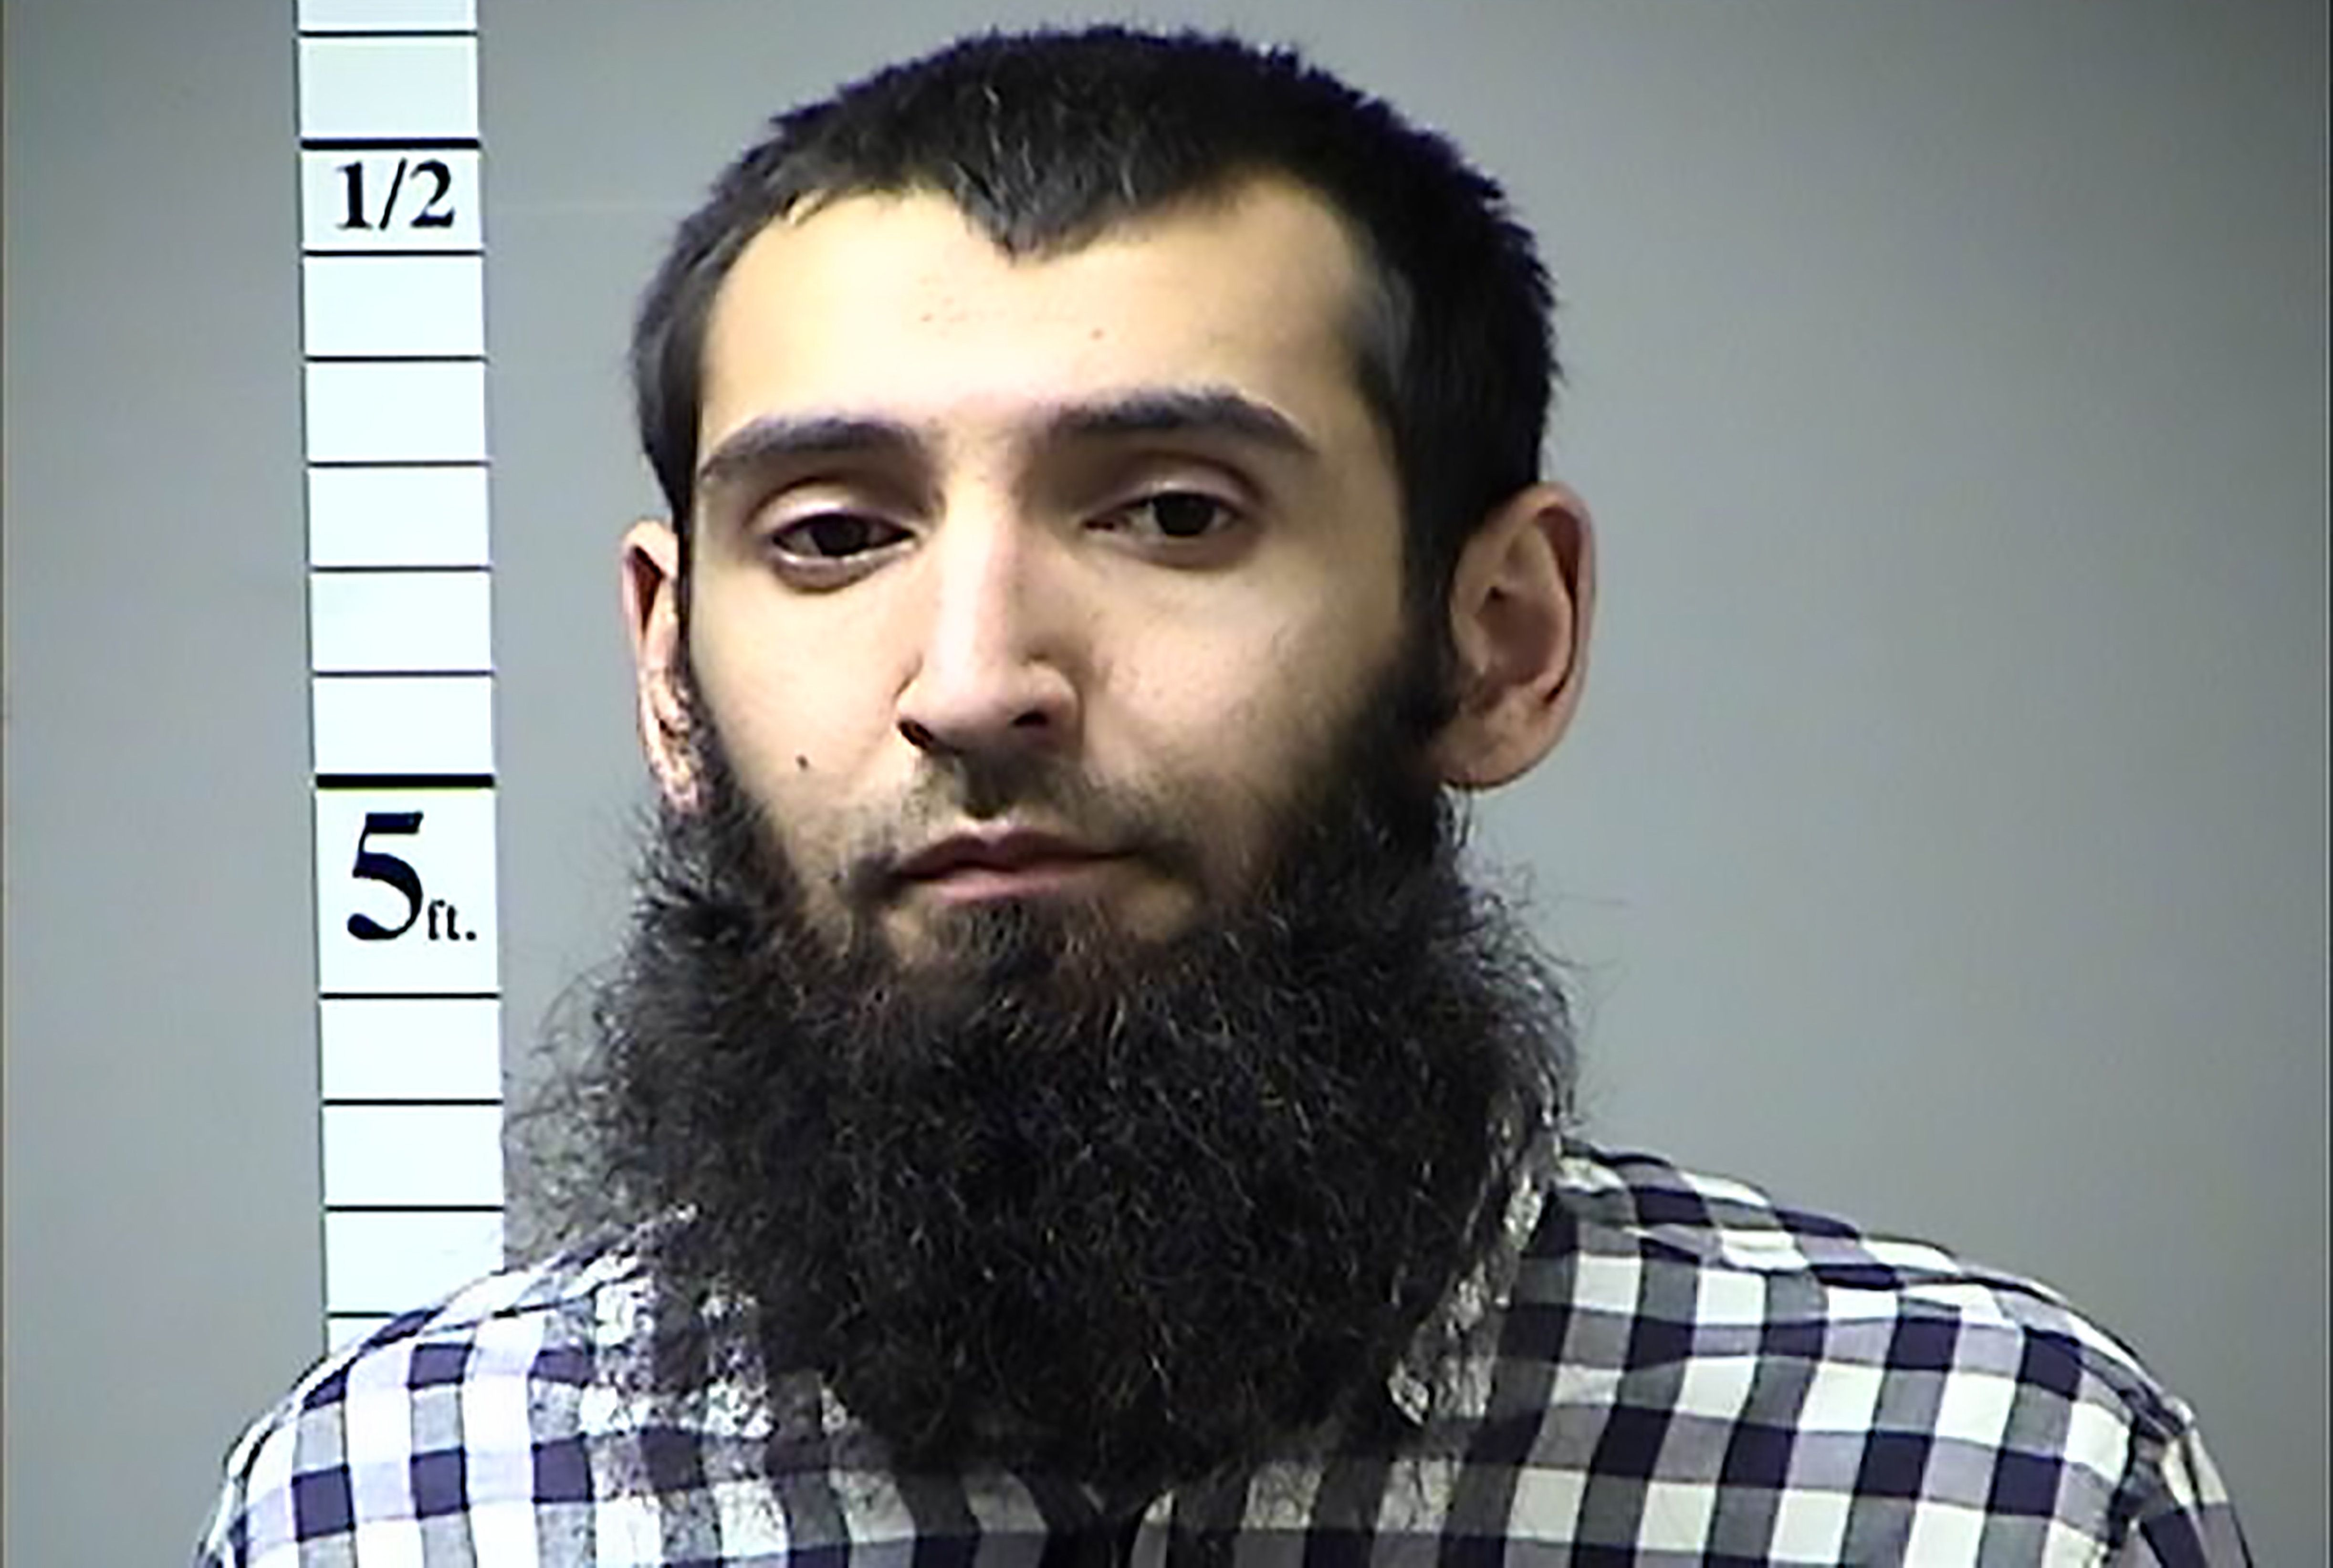 What We Know About Sayfullo Habibullaevic Saipov, Suspect In The Deadly NYC